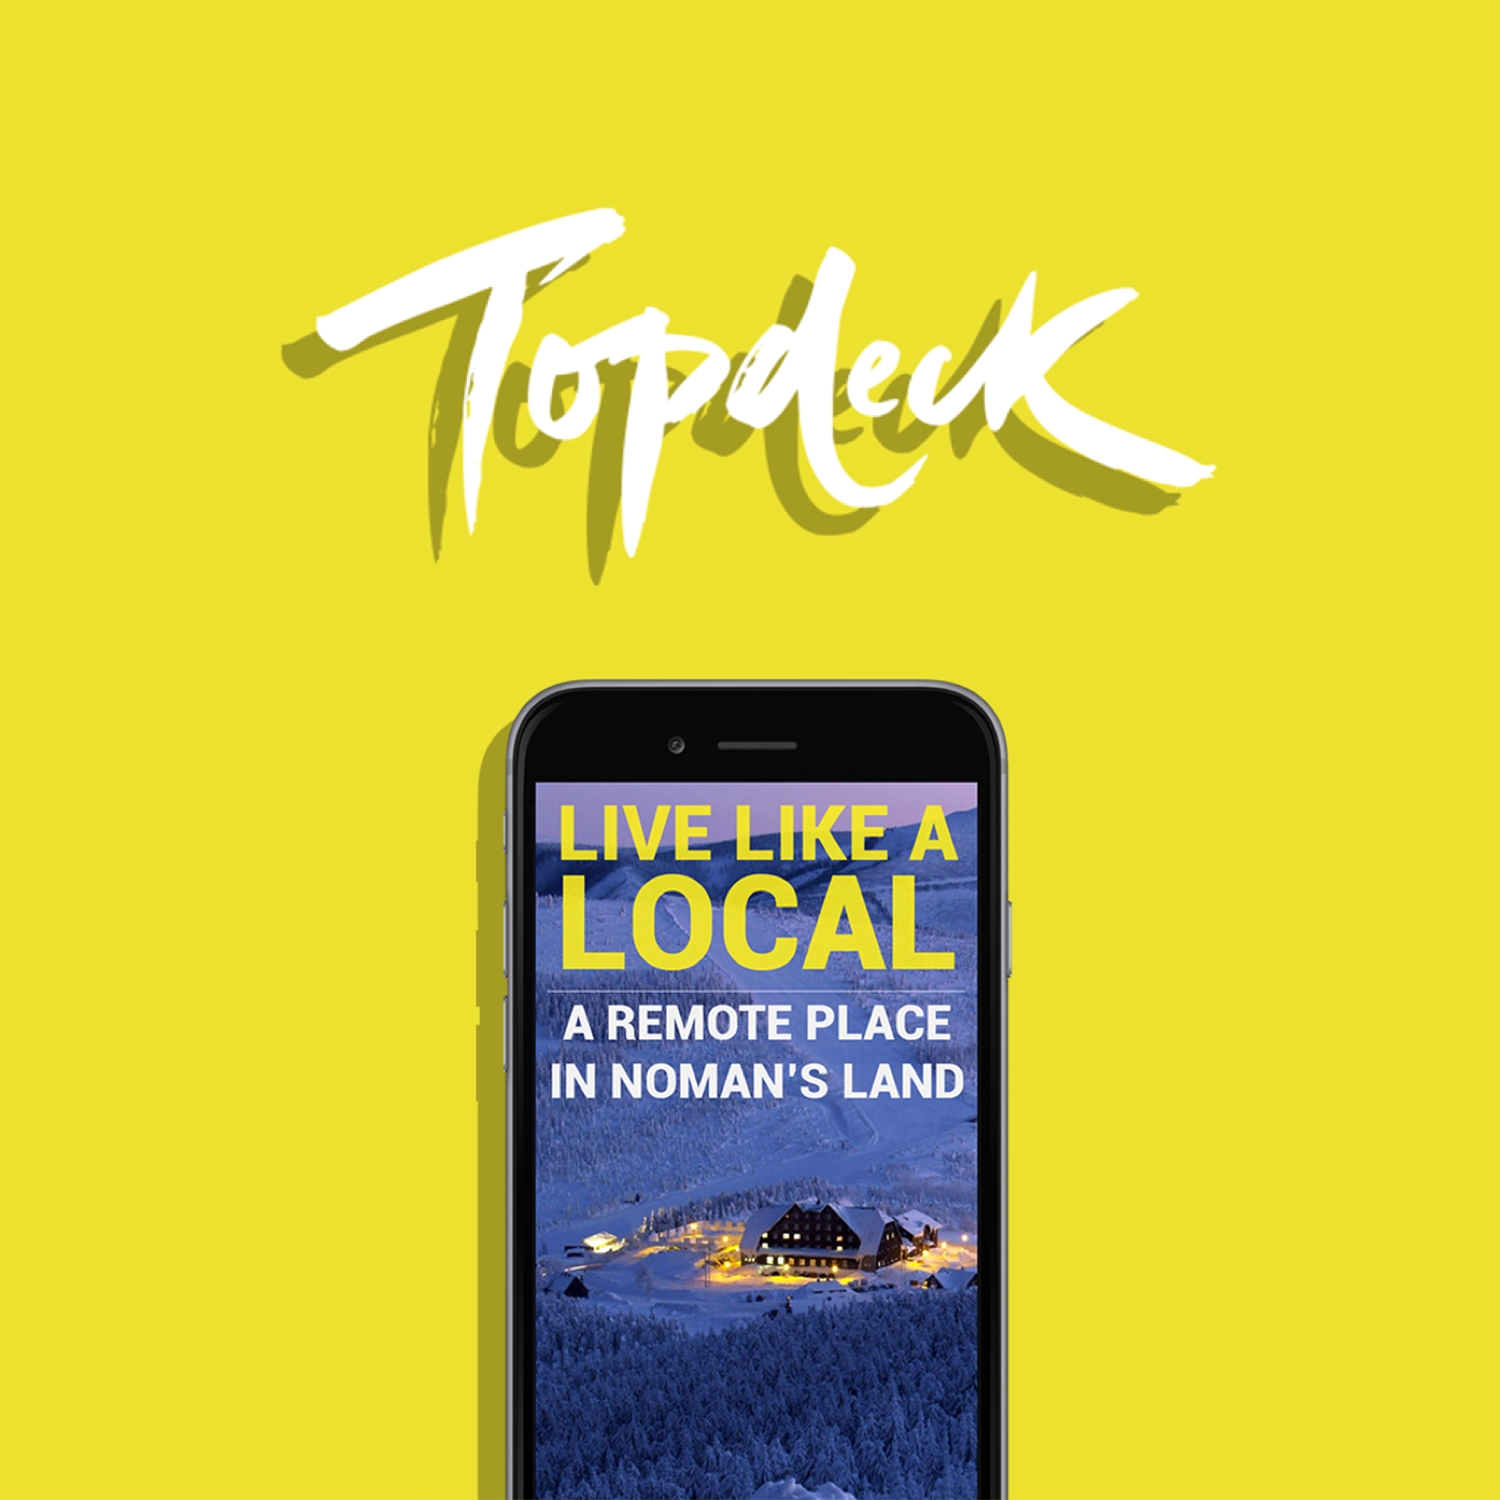 Topdeck Travels - A SoMe concept for the youthful travel agency